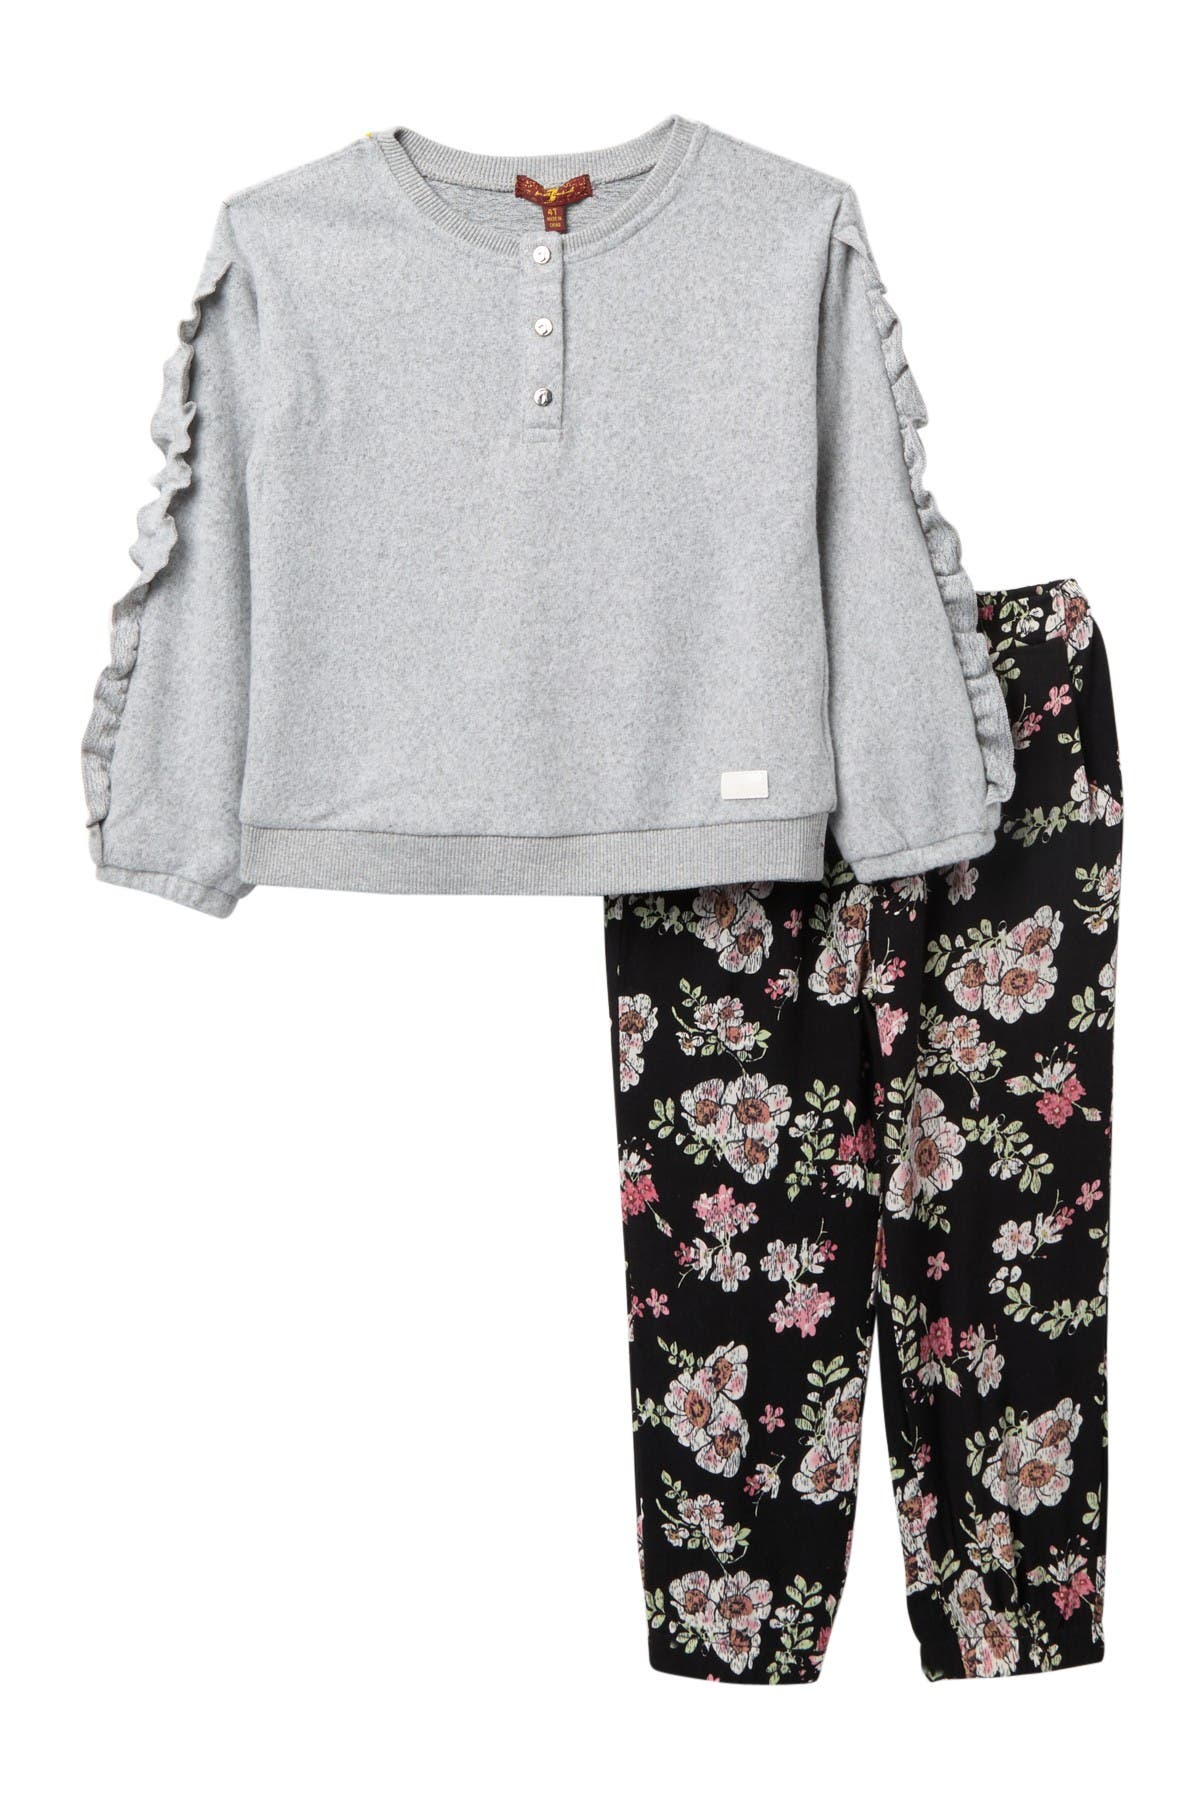 Image of 7 For All Mankind Ruffle Shirt & Leggings Set